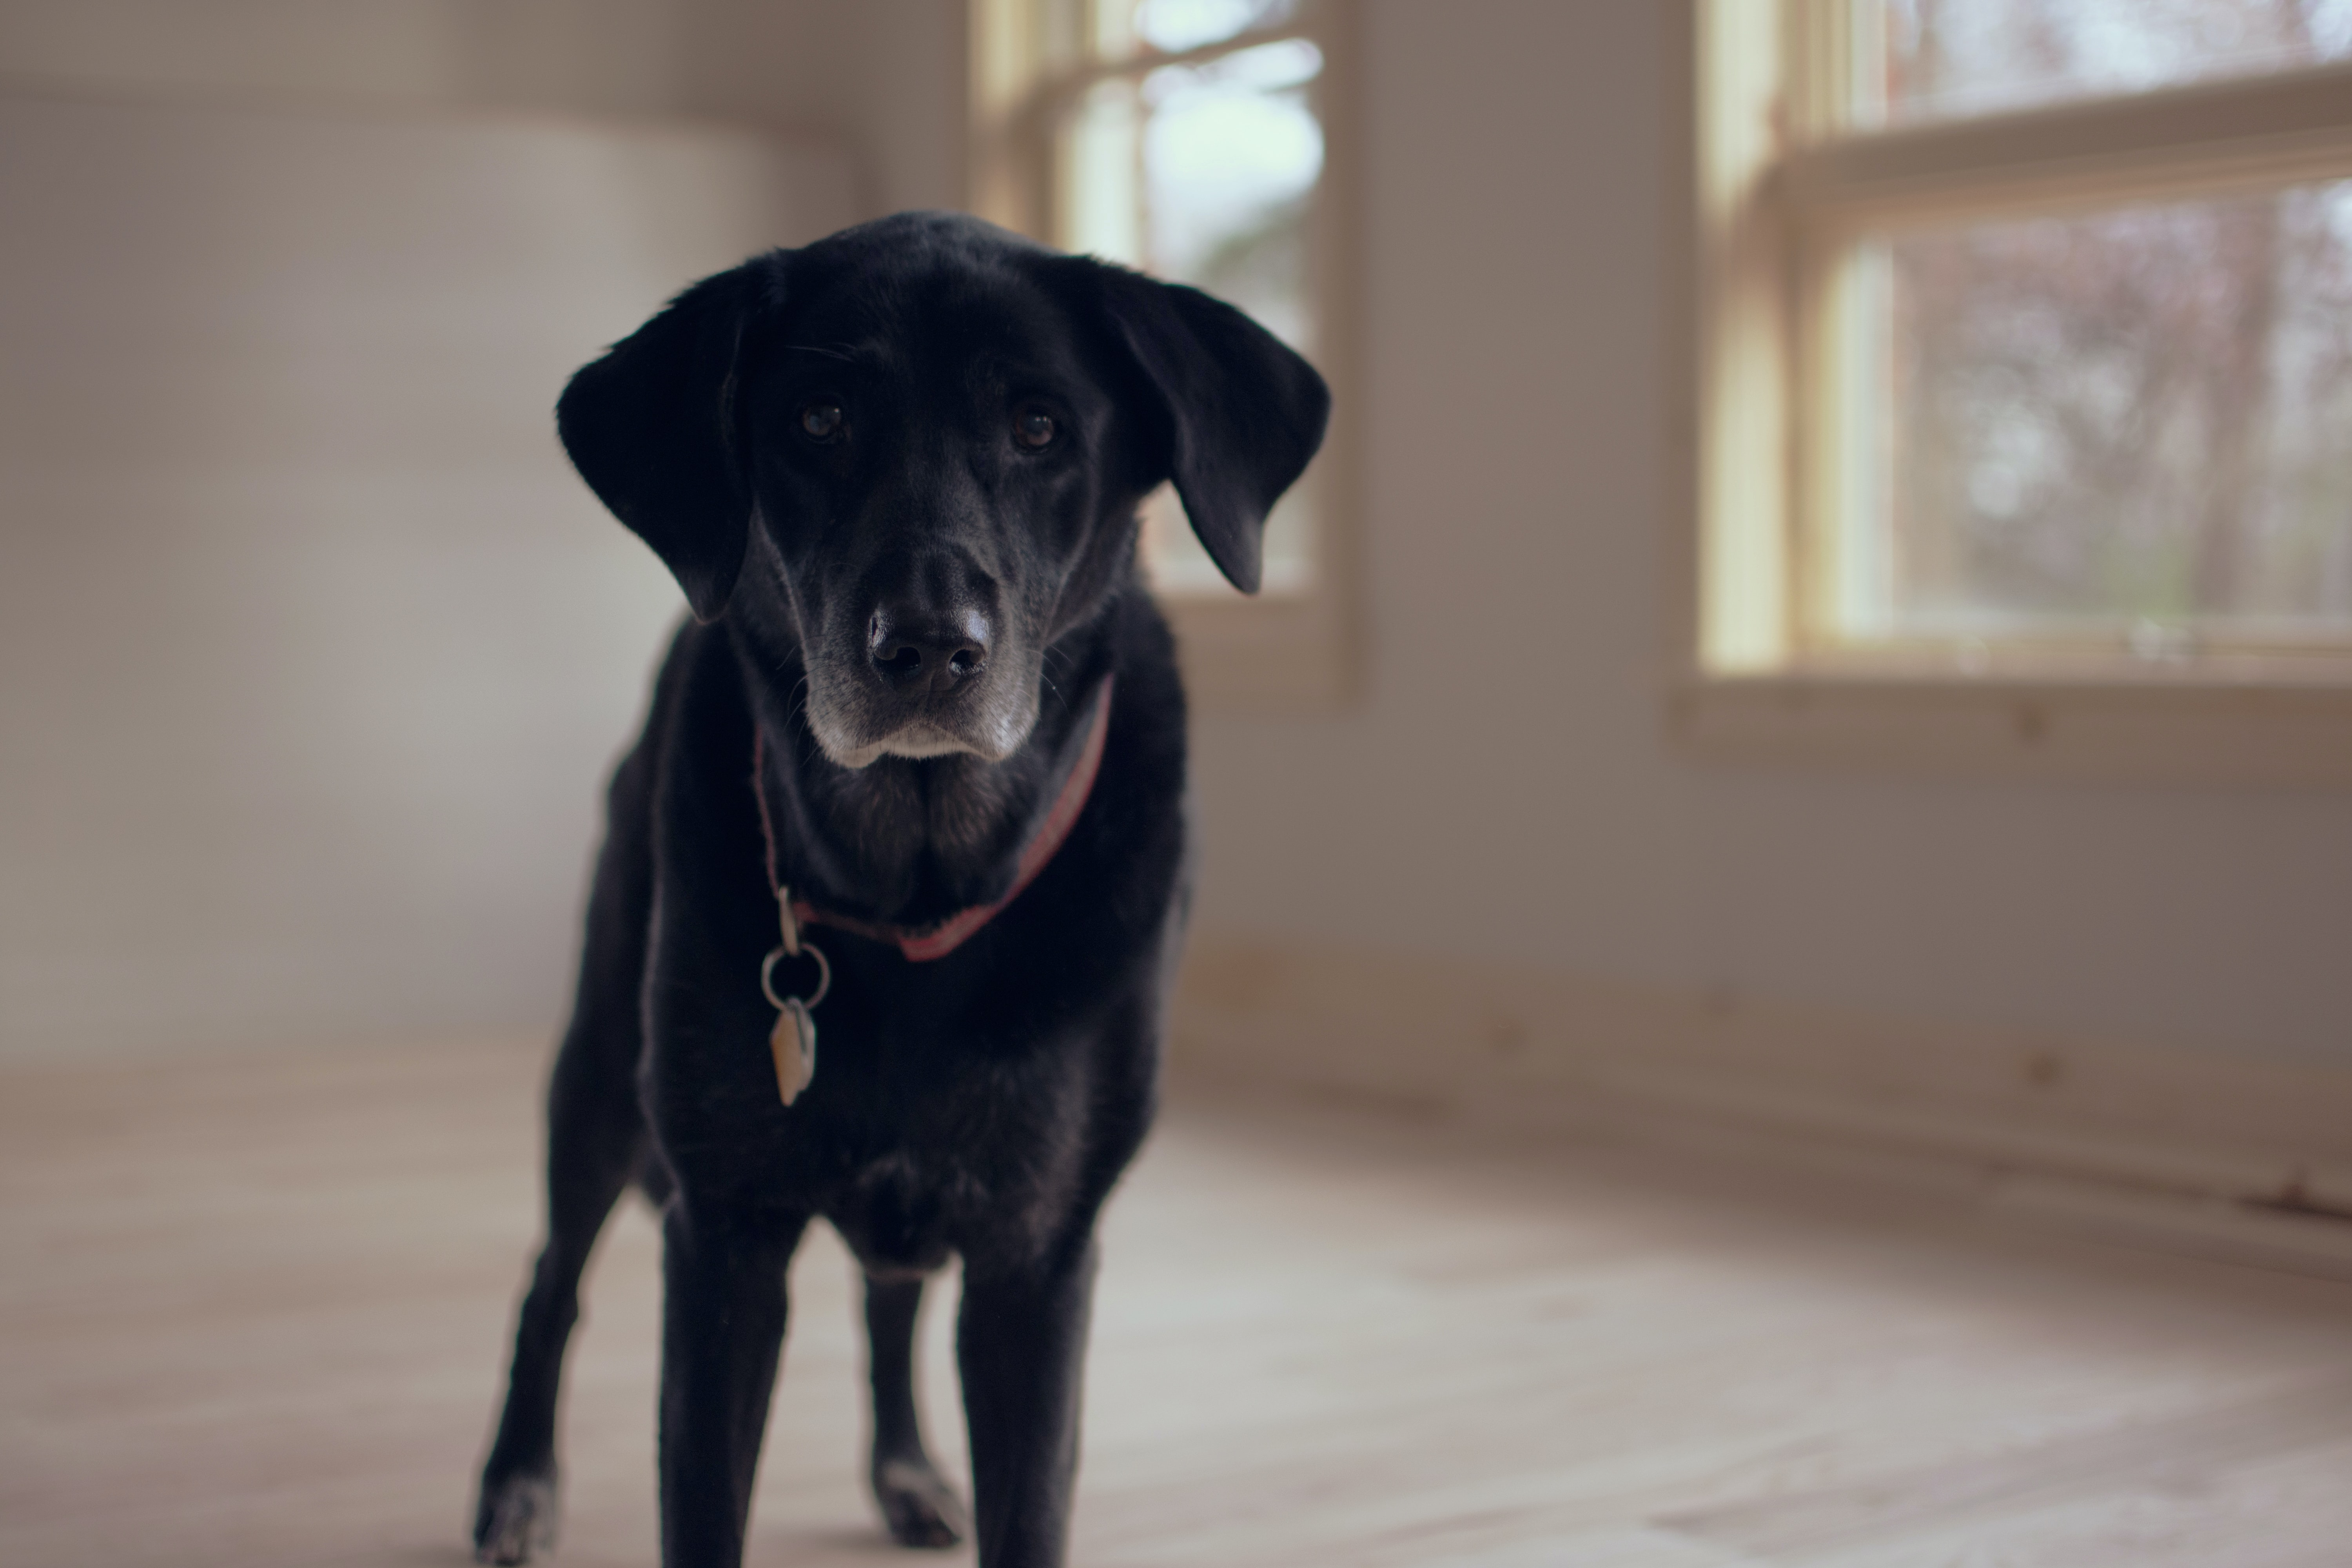 shallow focus photography of black dog along glass window